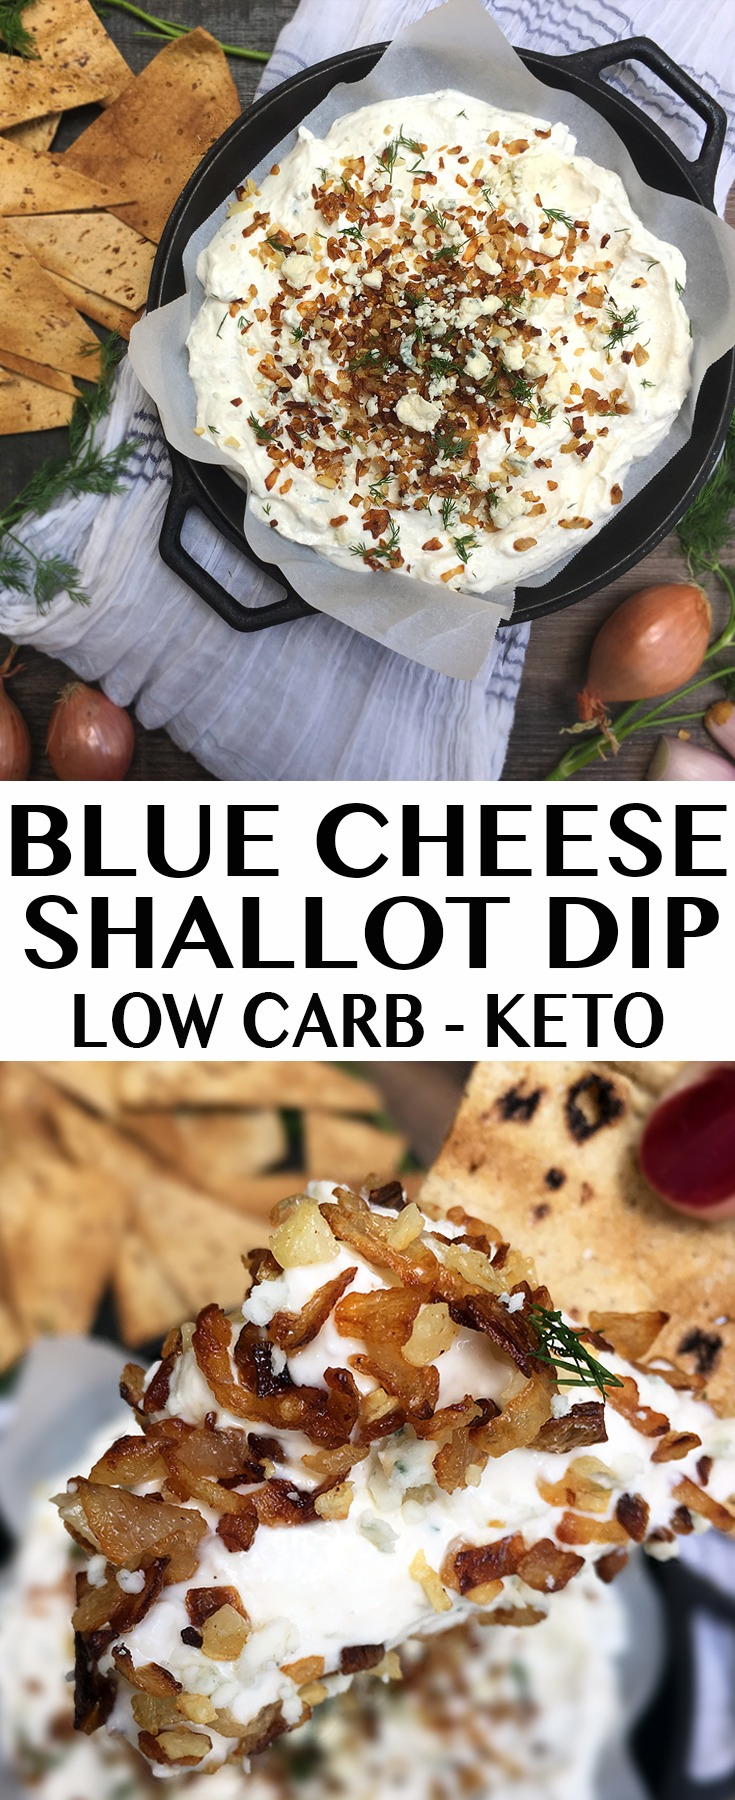 Low Carb Blue Cheese Shallot Dip - Keto Friendly! Serve with homemade low-carb pita chips.